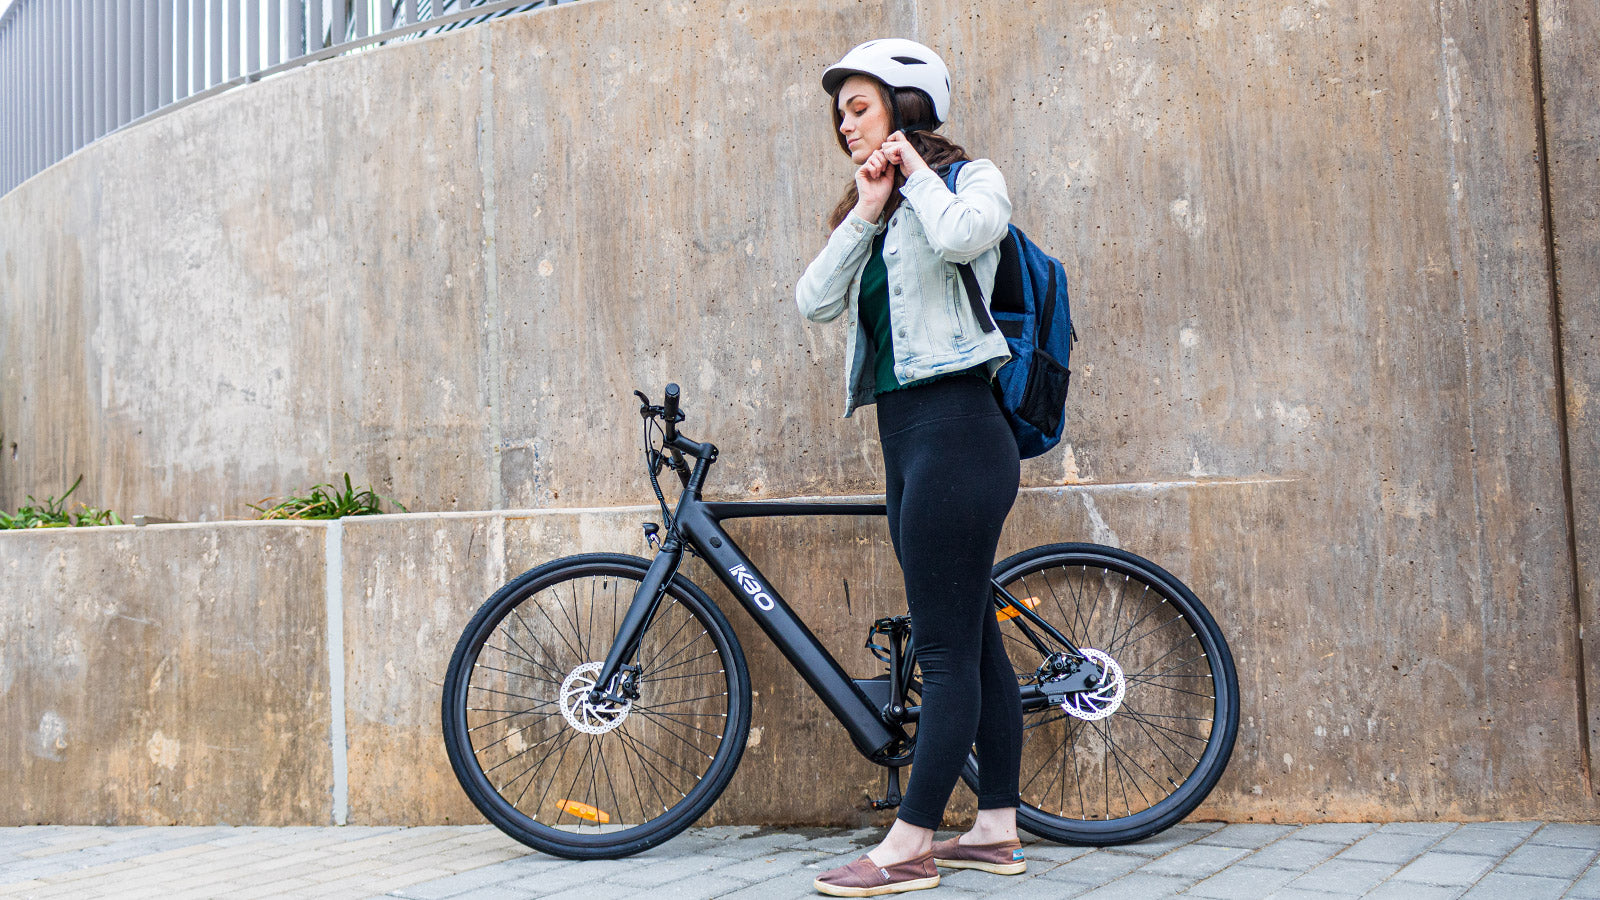 electric-bicycles-classifications-and-regulations-guide